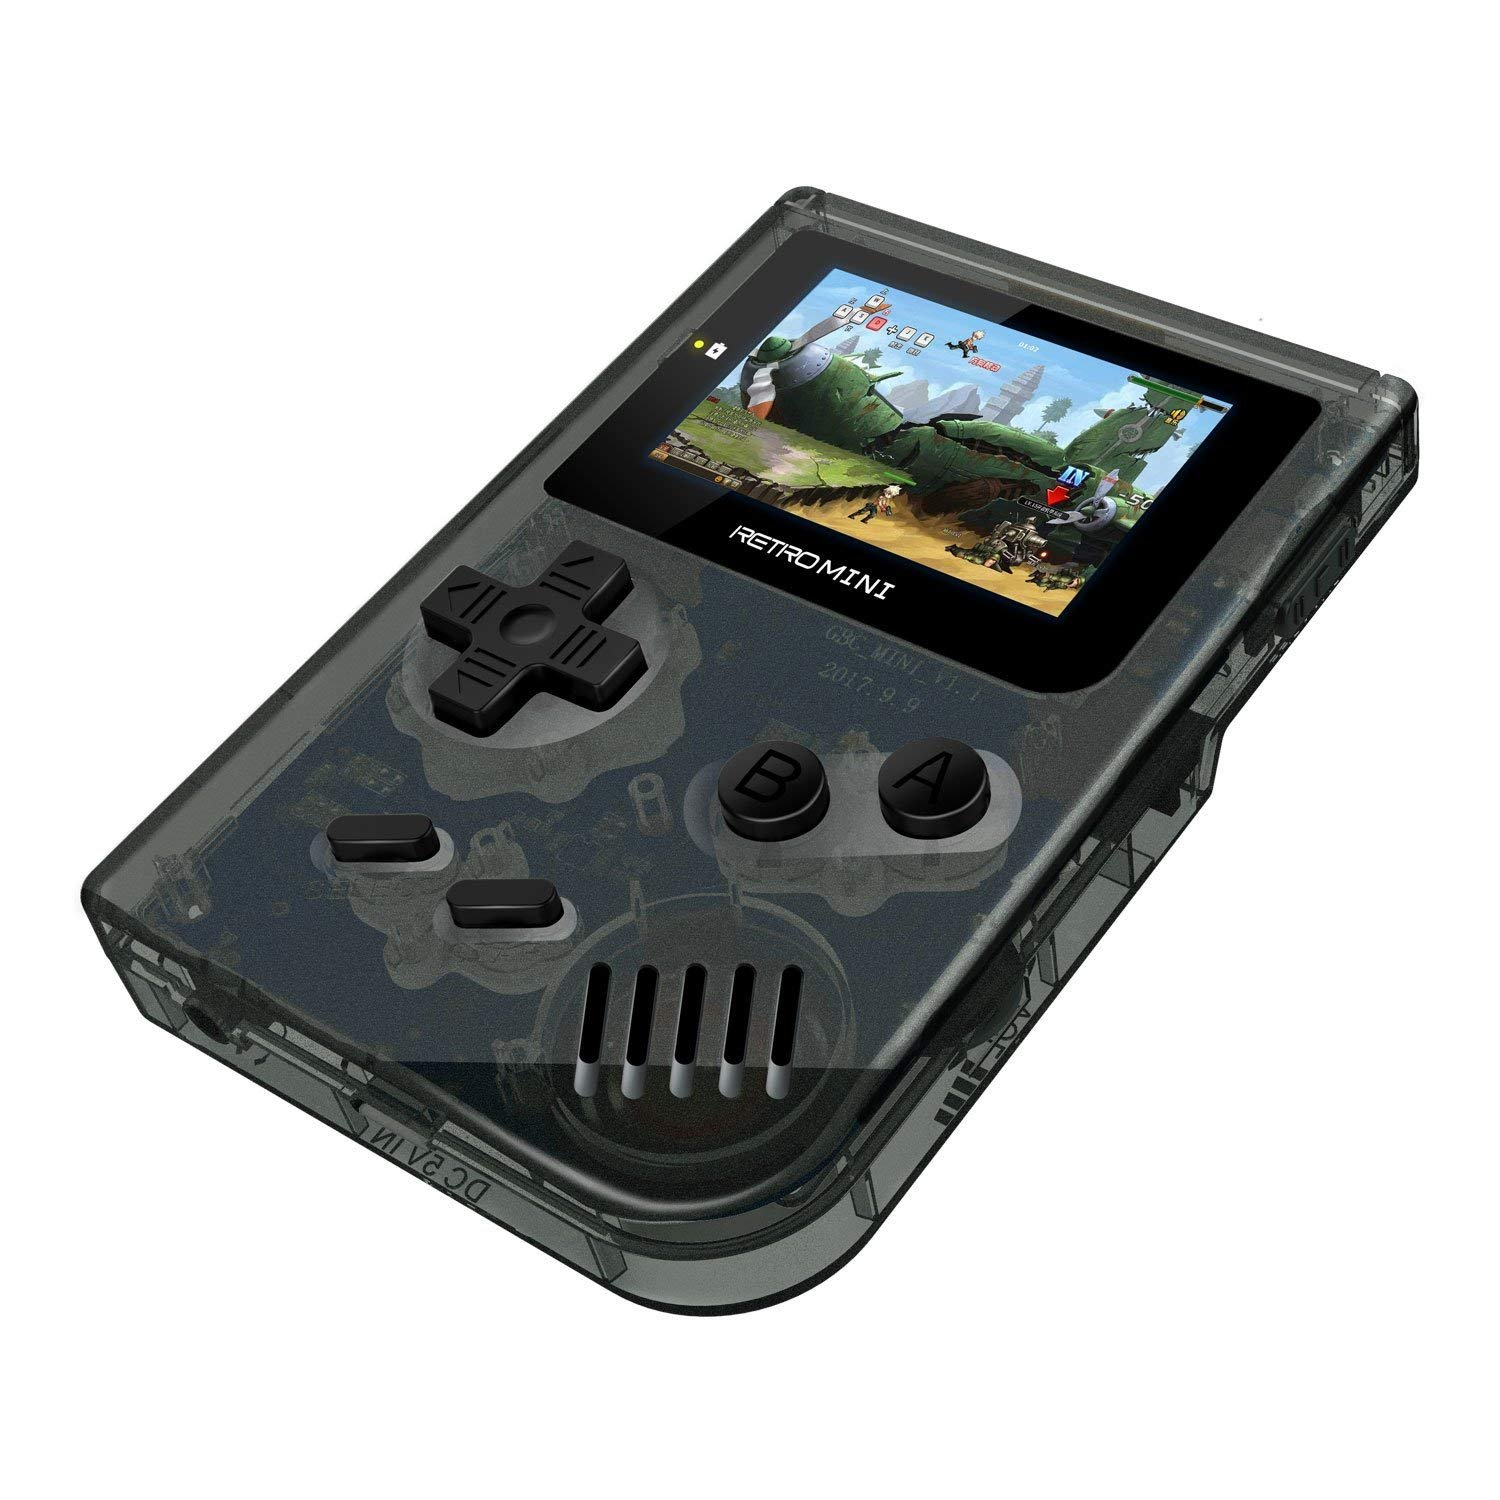 FLYFISH Retro Handheld Game Console,Portable FC Game Console 3 Inch 168 Classic Games Birthday Present for Children Transparent Black